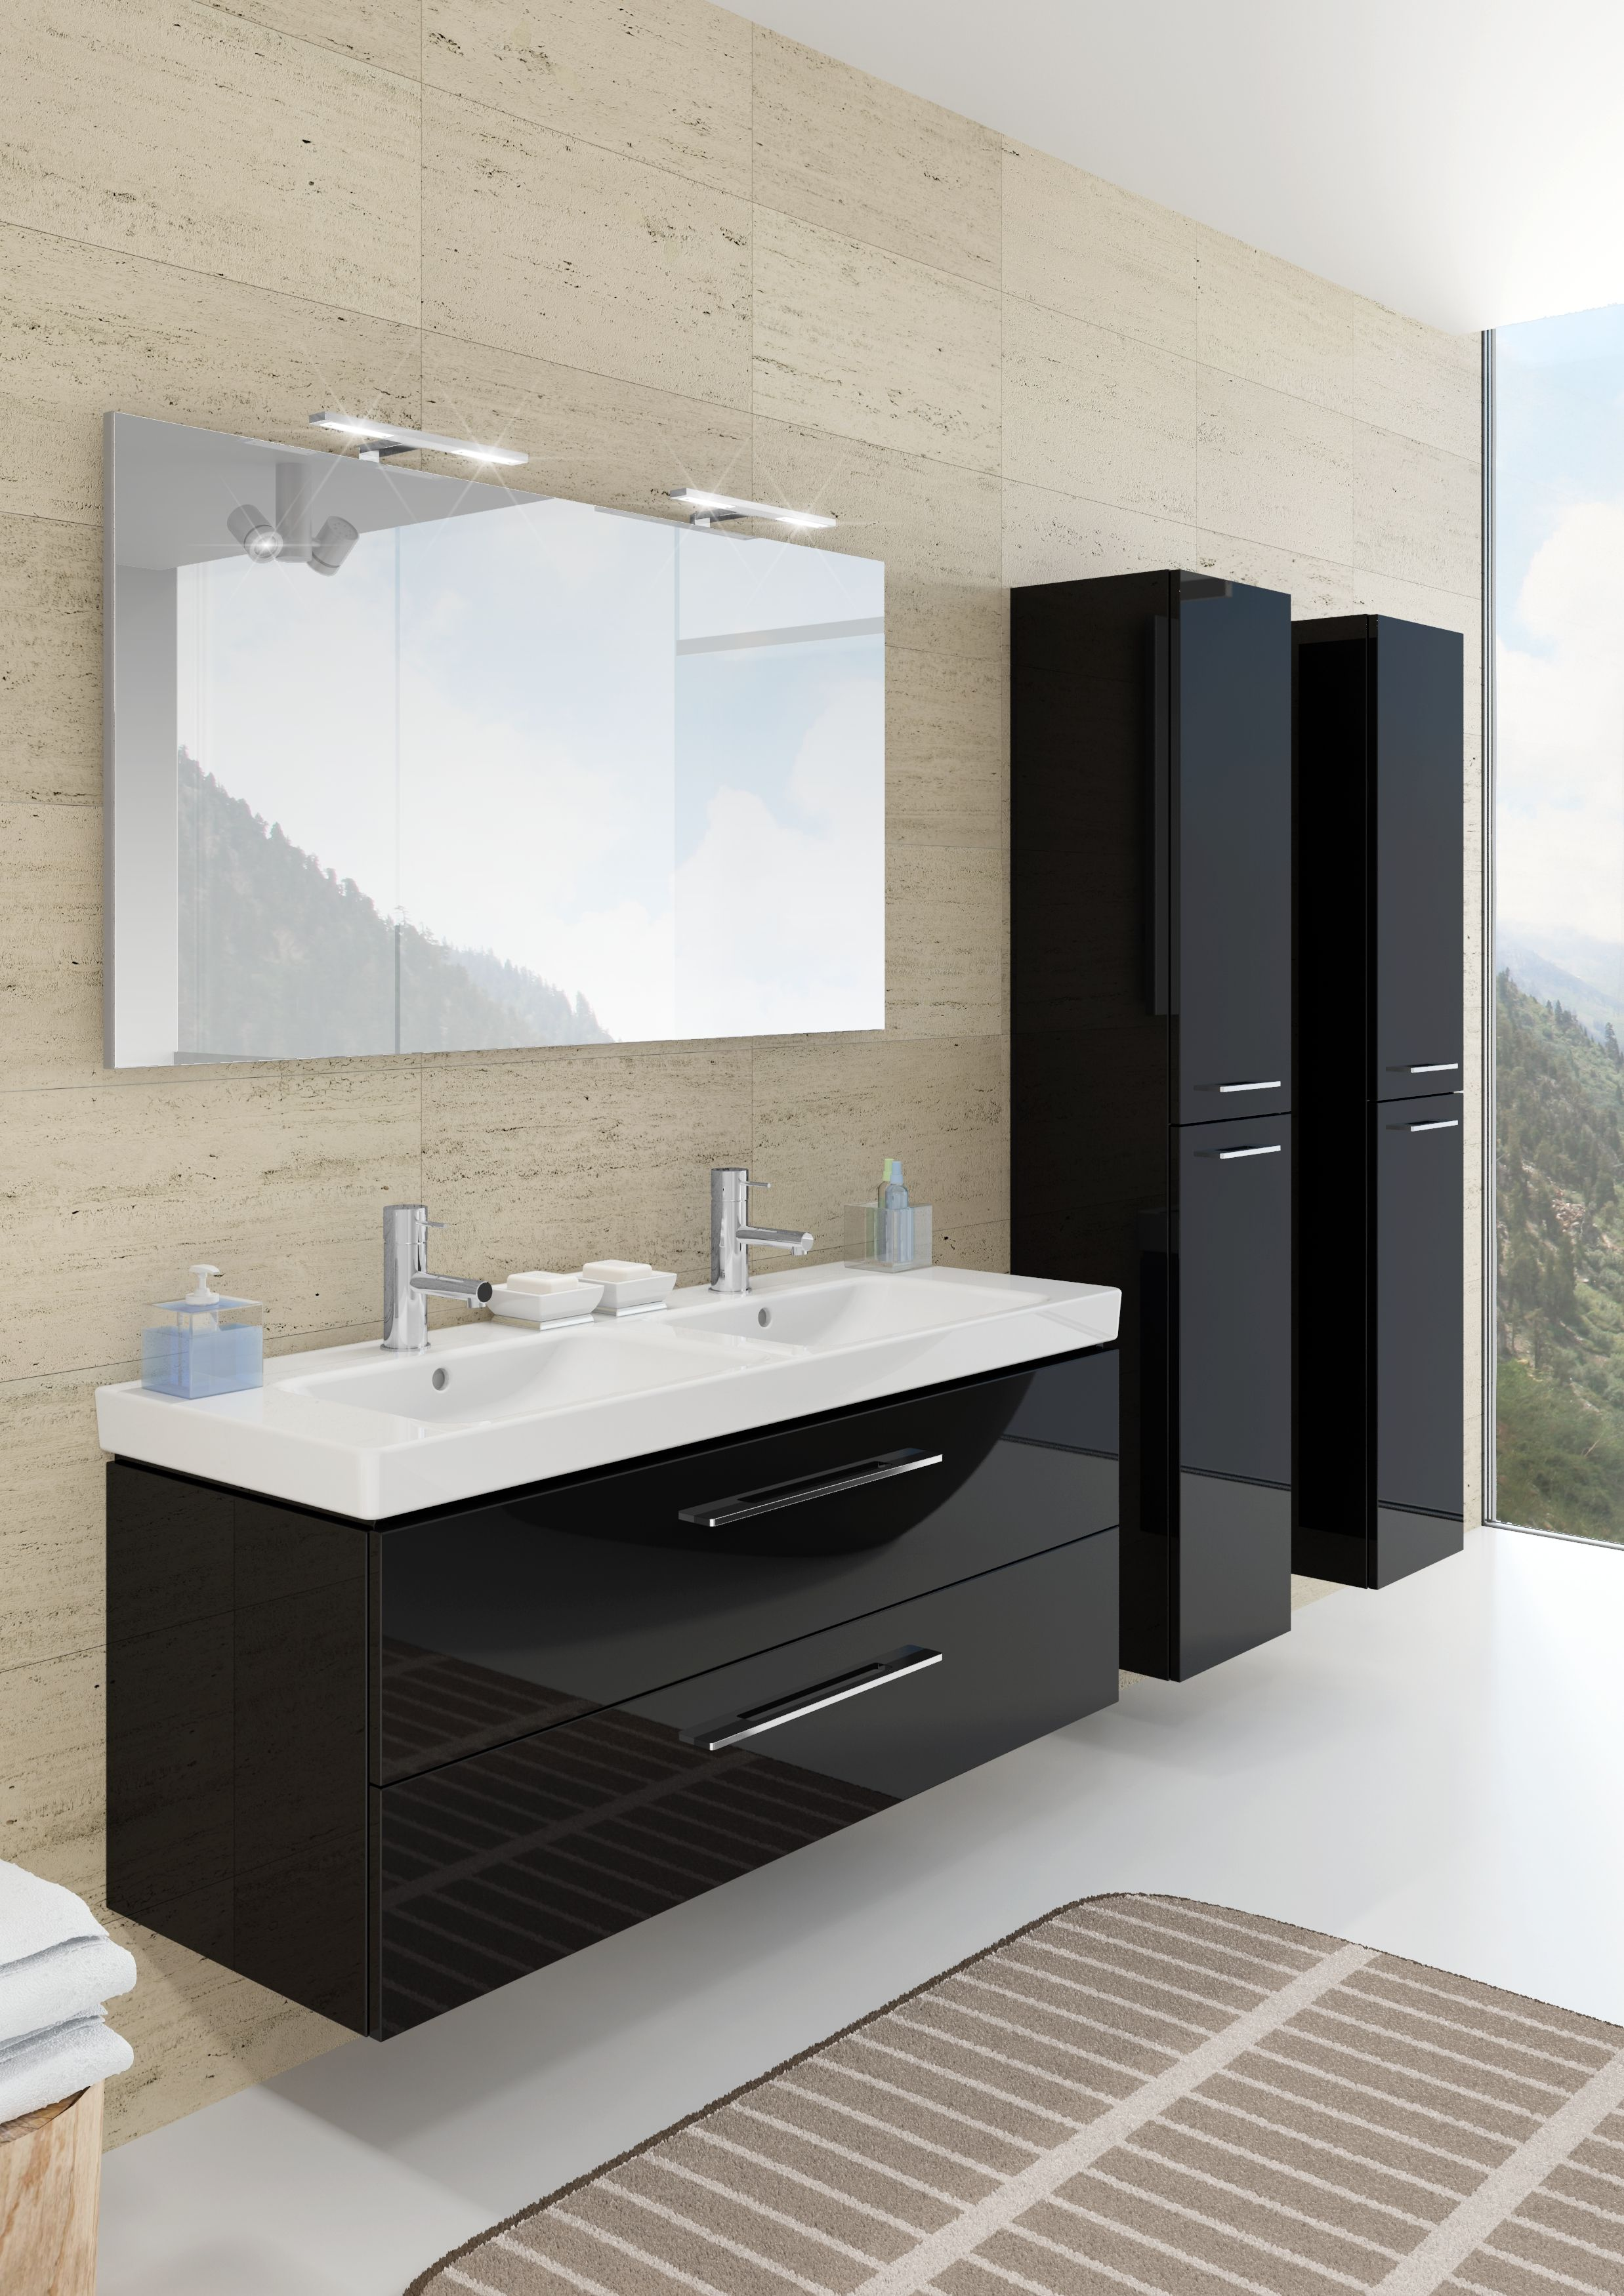 modern bathroom furniture altare in glossy black with washbasin in ceramic from villeroy en boch - Villeroy And Boch Bathroom Furniture